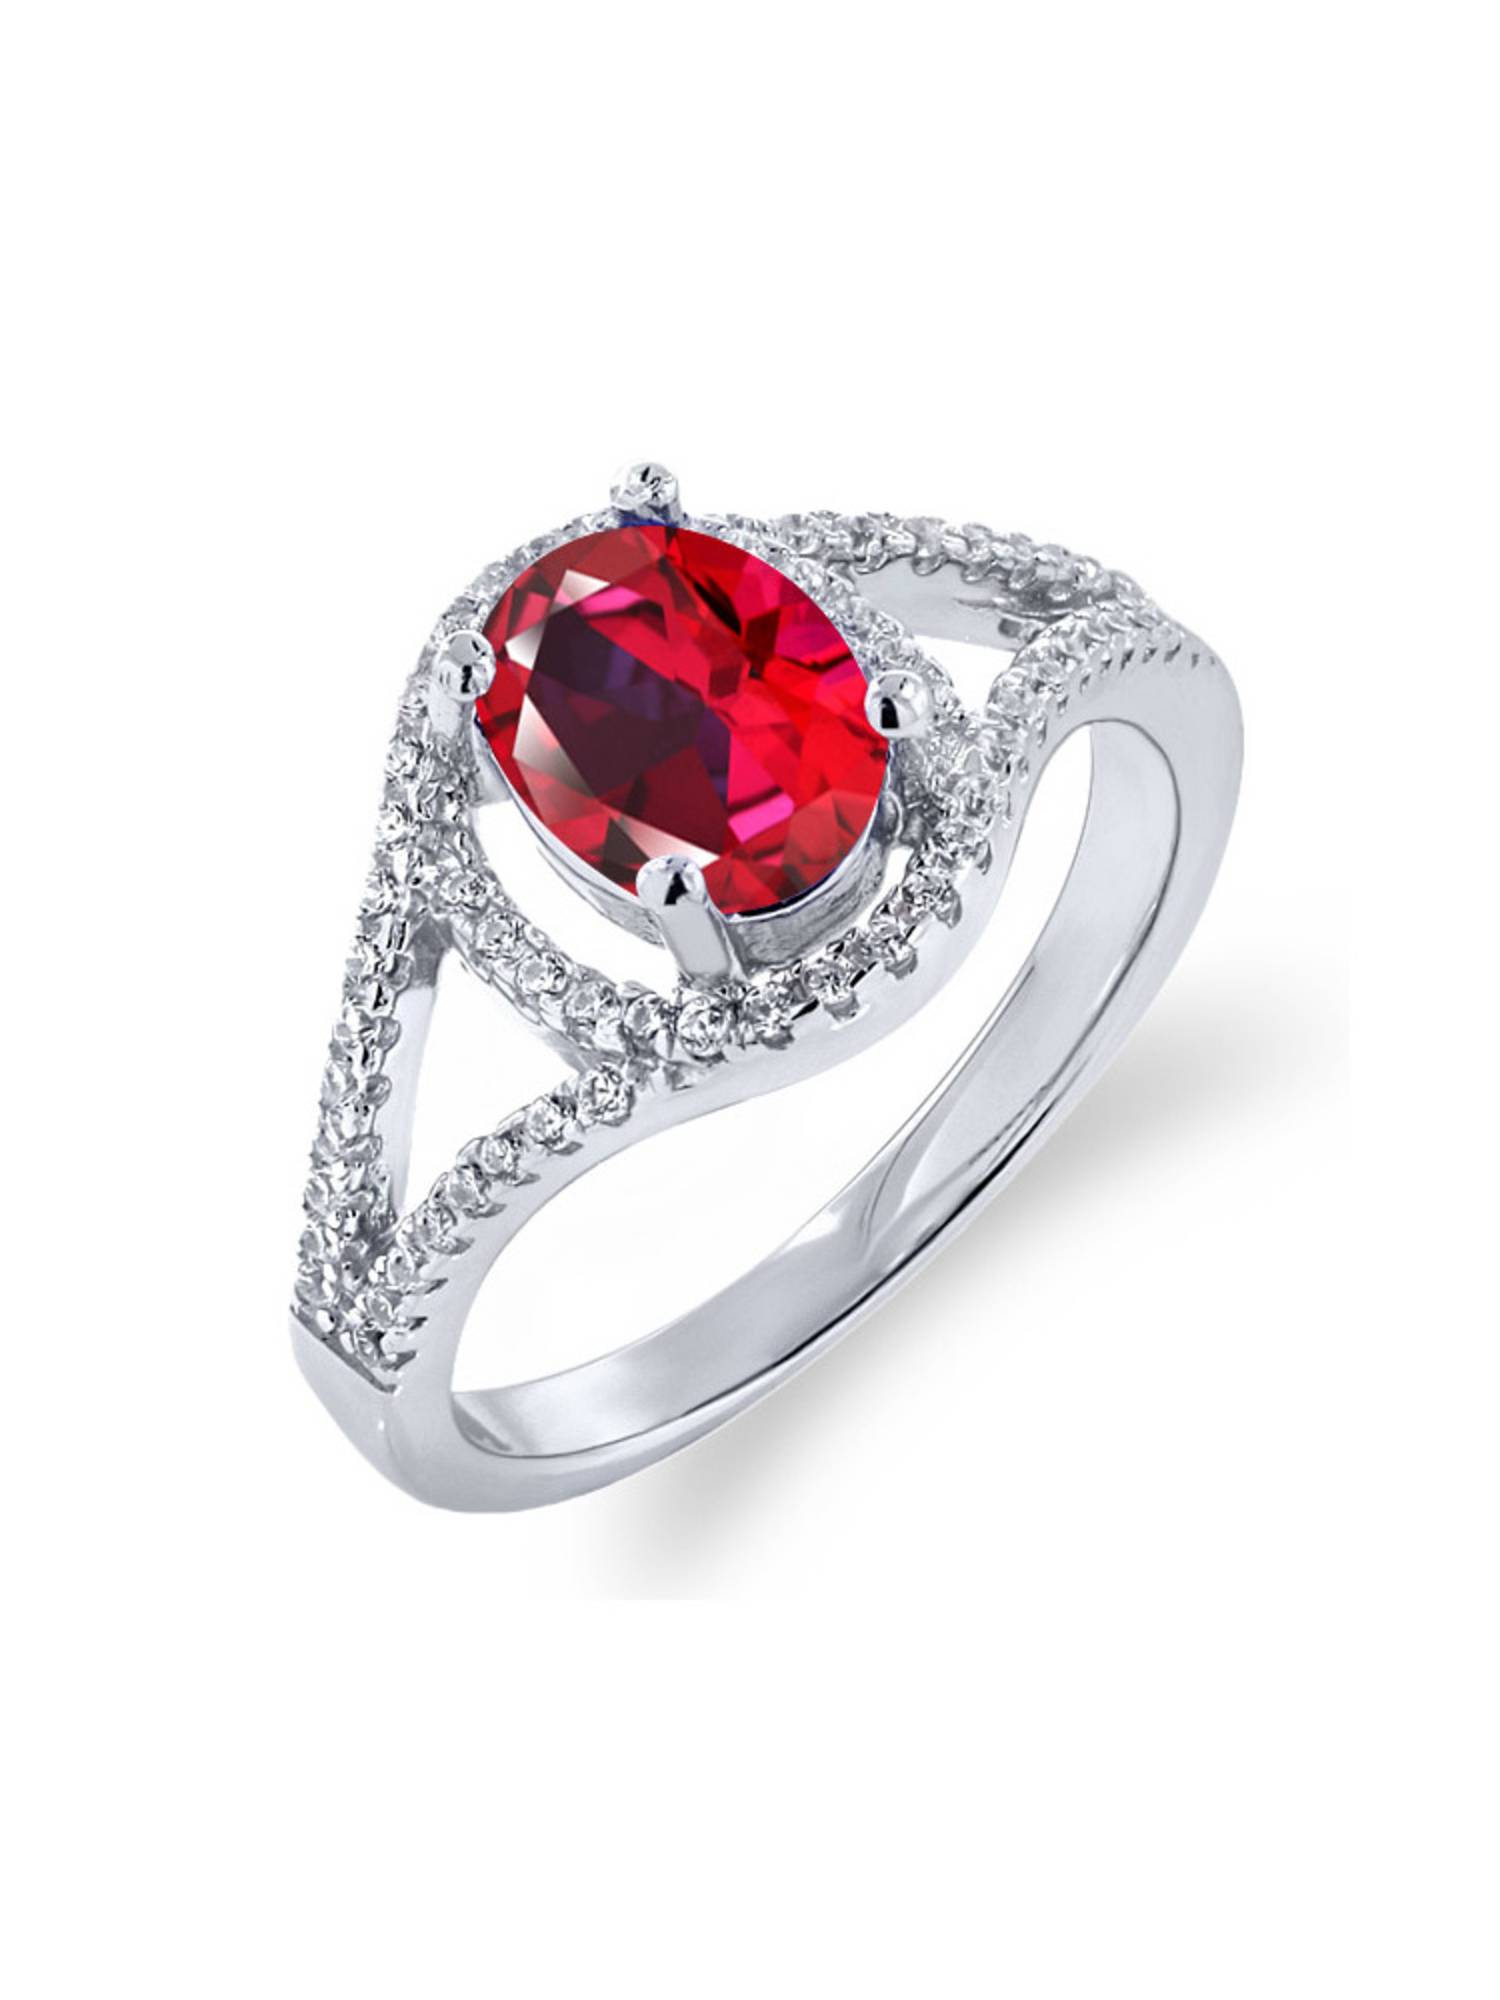 925 Sterling Silver Ring Set with Oval Blazing Red Topaz from Swarovski by